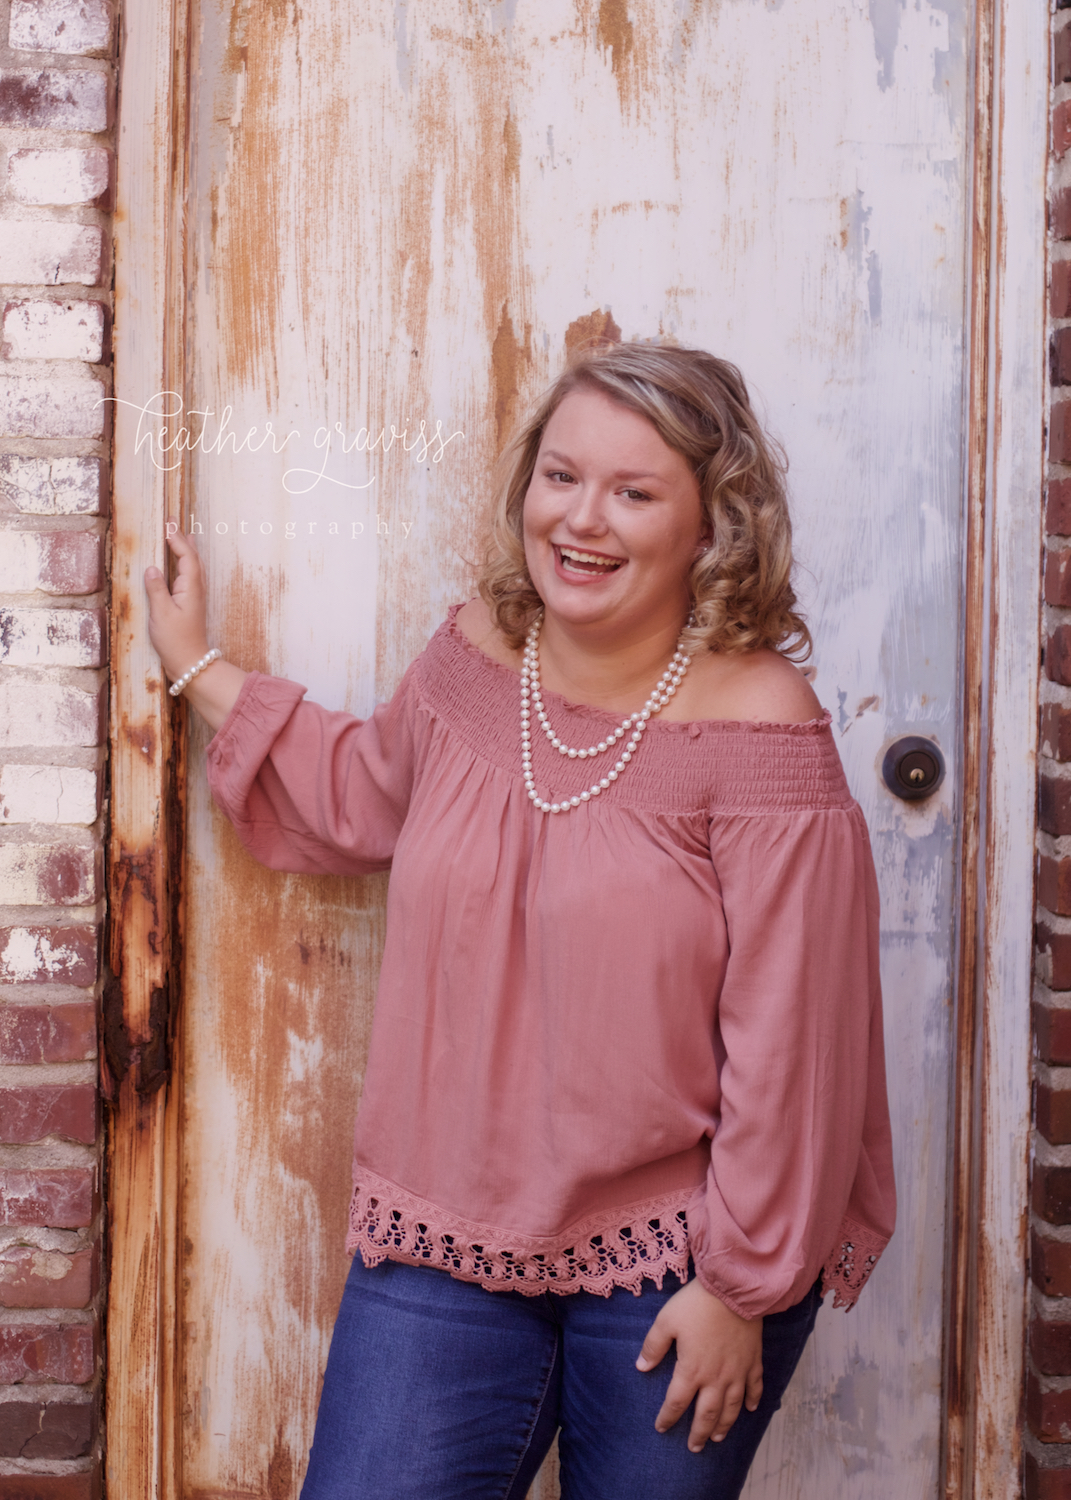 nashville middle tn senior portrait photographer 095.jpg